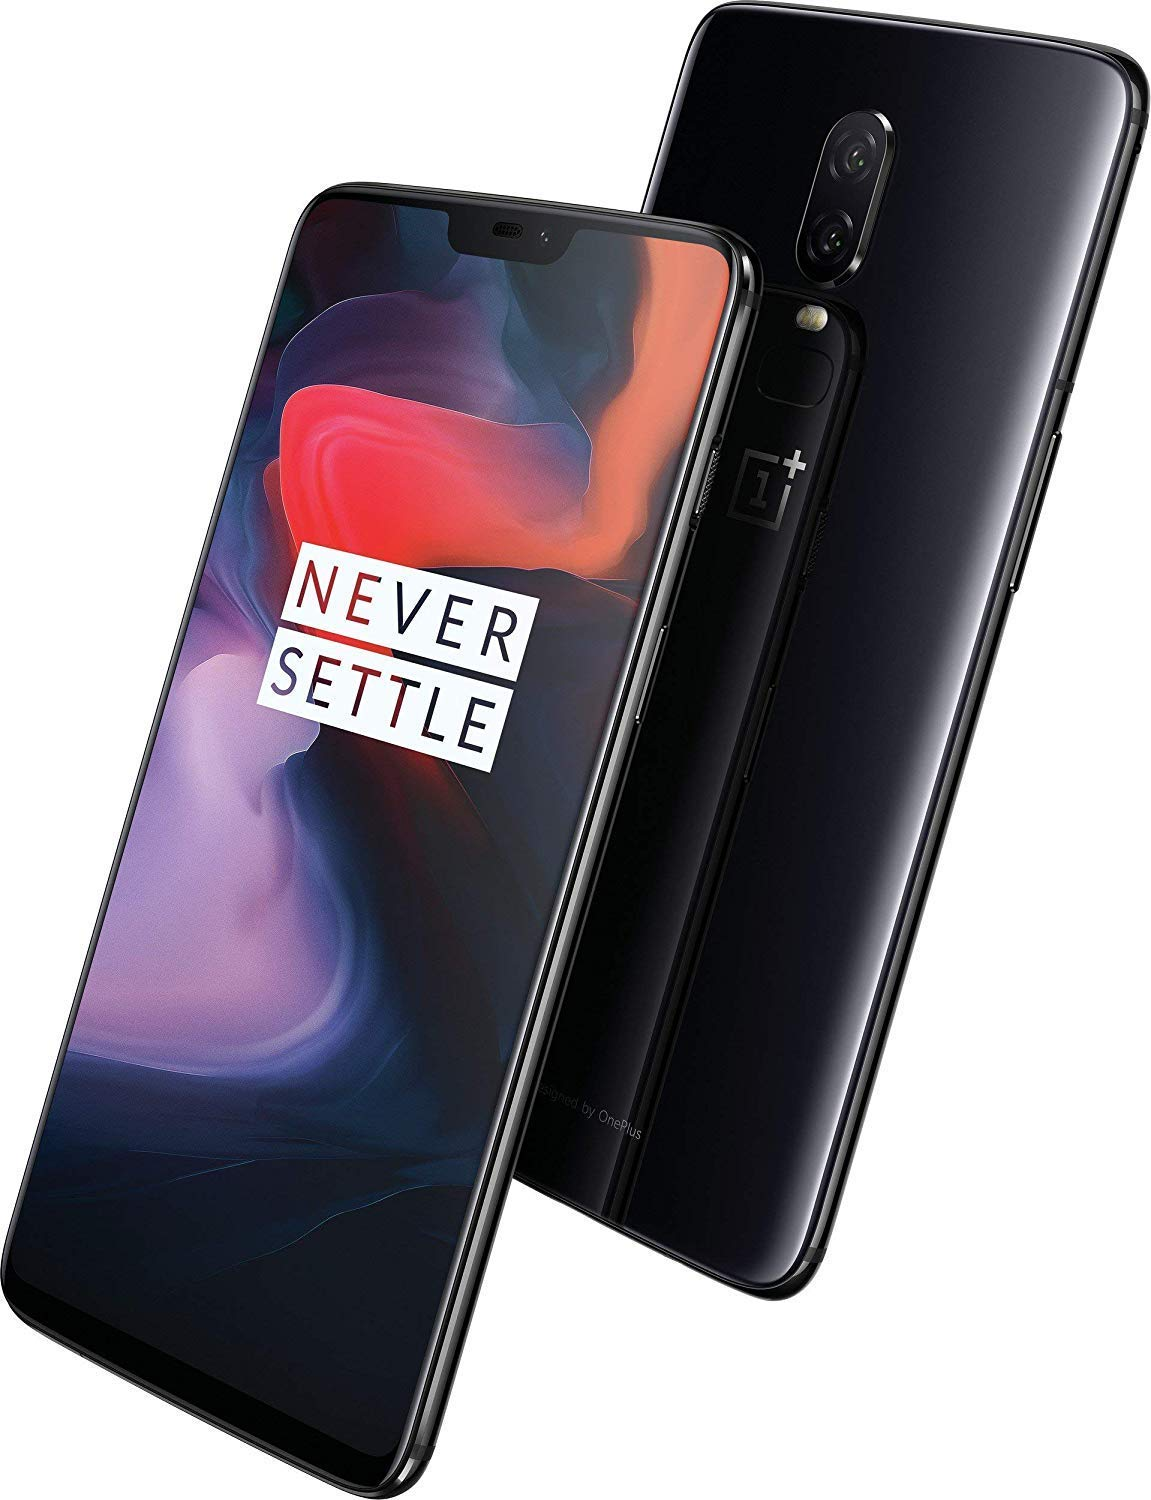 Amazon Great Indian Festival - OnePlus 6 Snapdragon 845 Rs 29,999